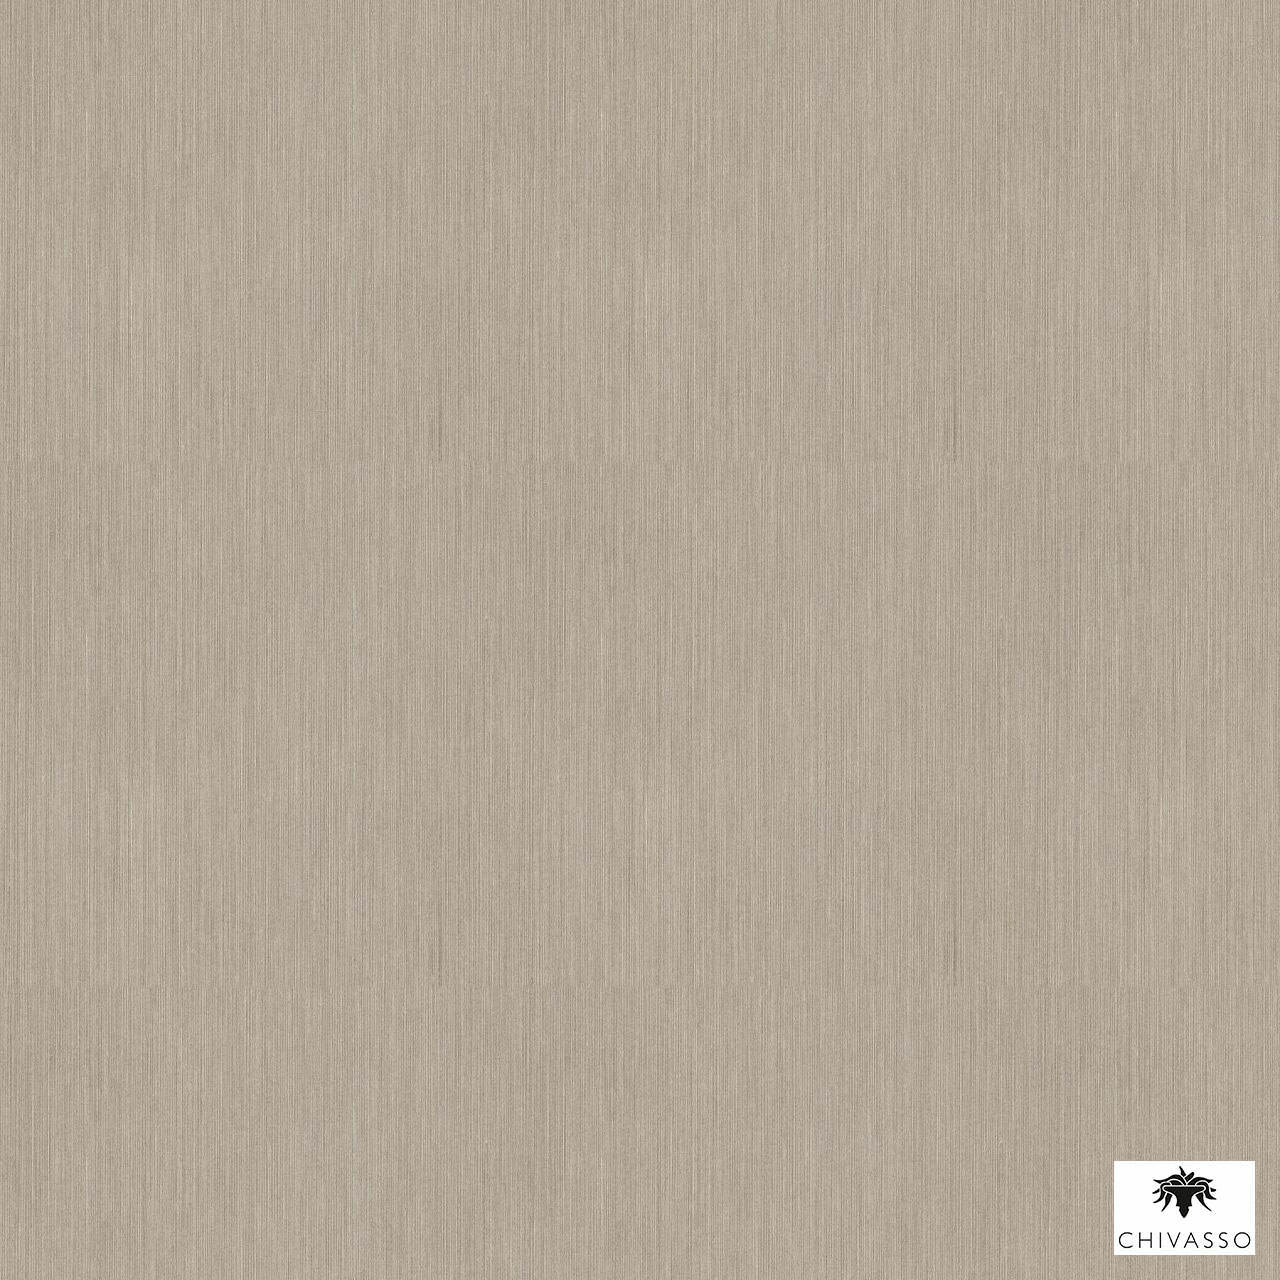 Chivasso - Colour Block - Ch9112-074  | Wallpaper, Wallcovering - Plain, Tan, Taupe, Domestic Use